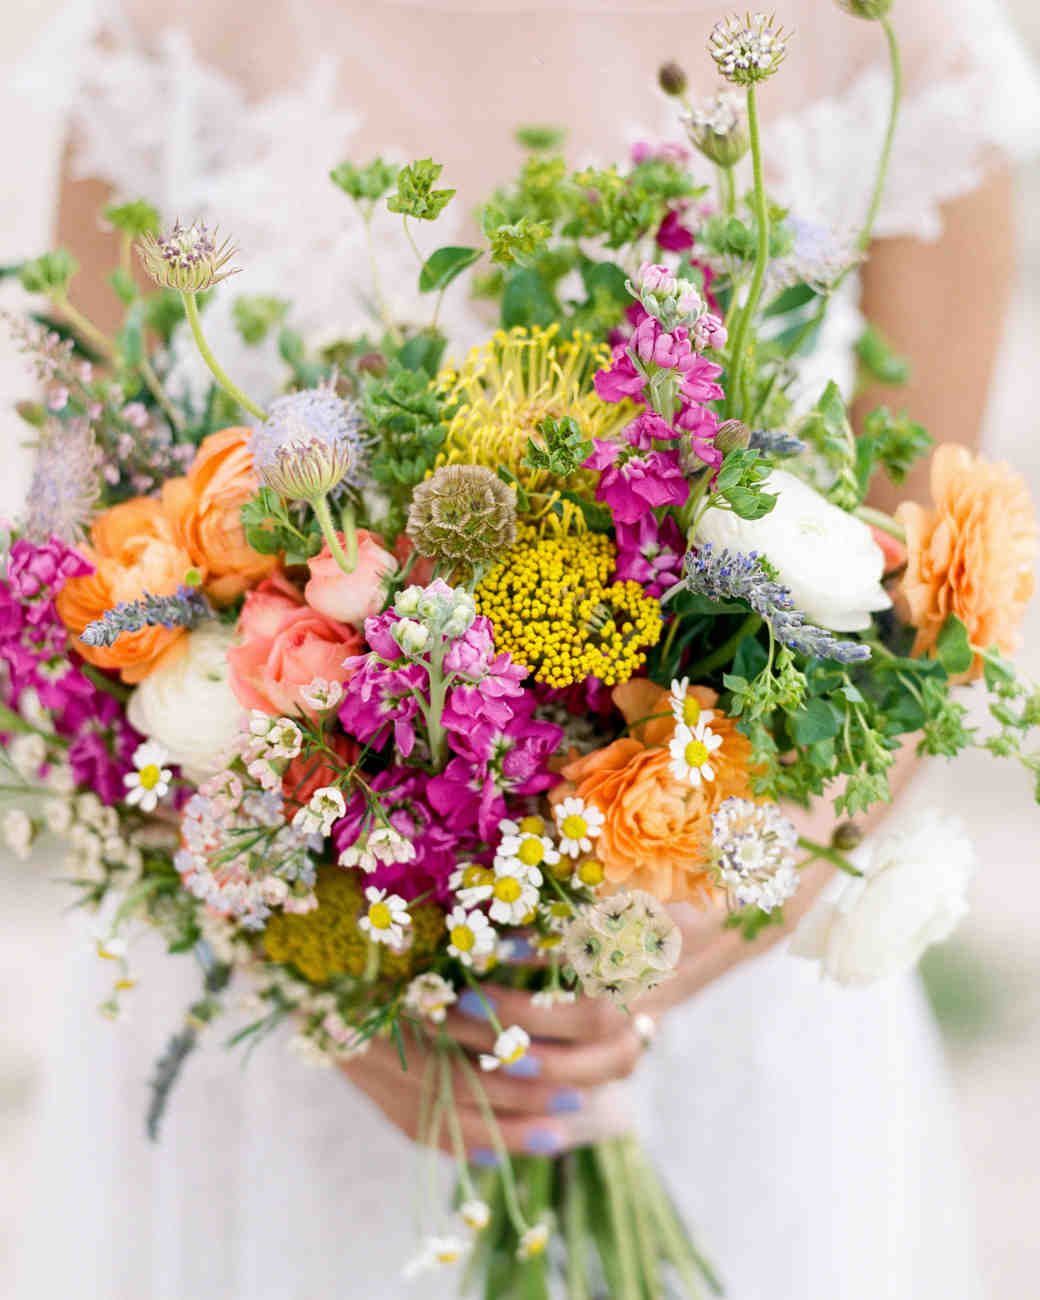 Wedding Flower Arrangements: The 50 Best Wedding Bouquets